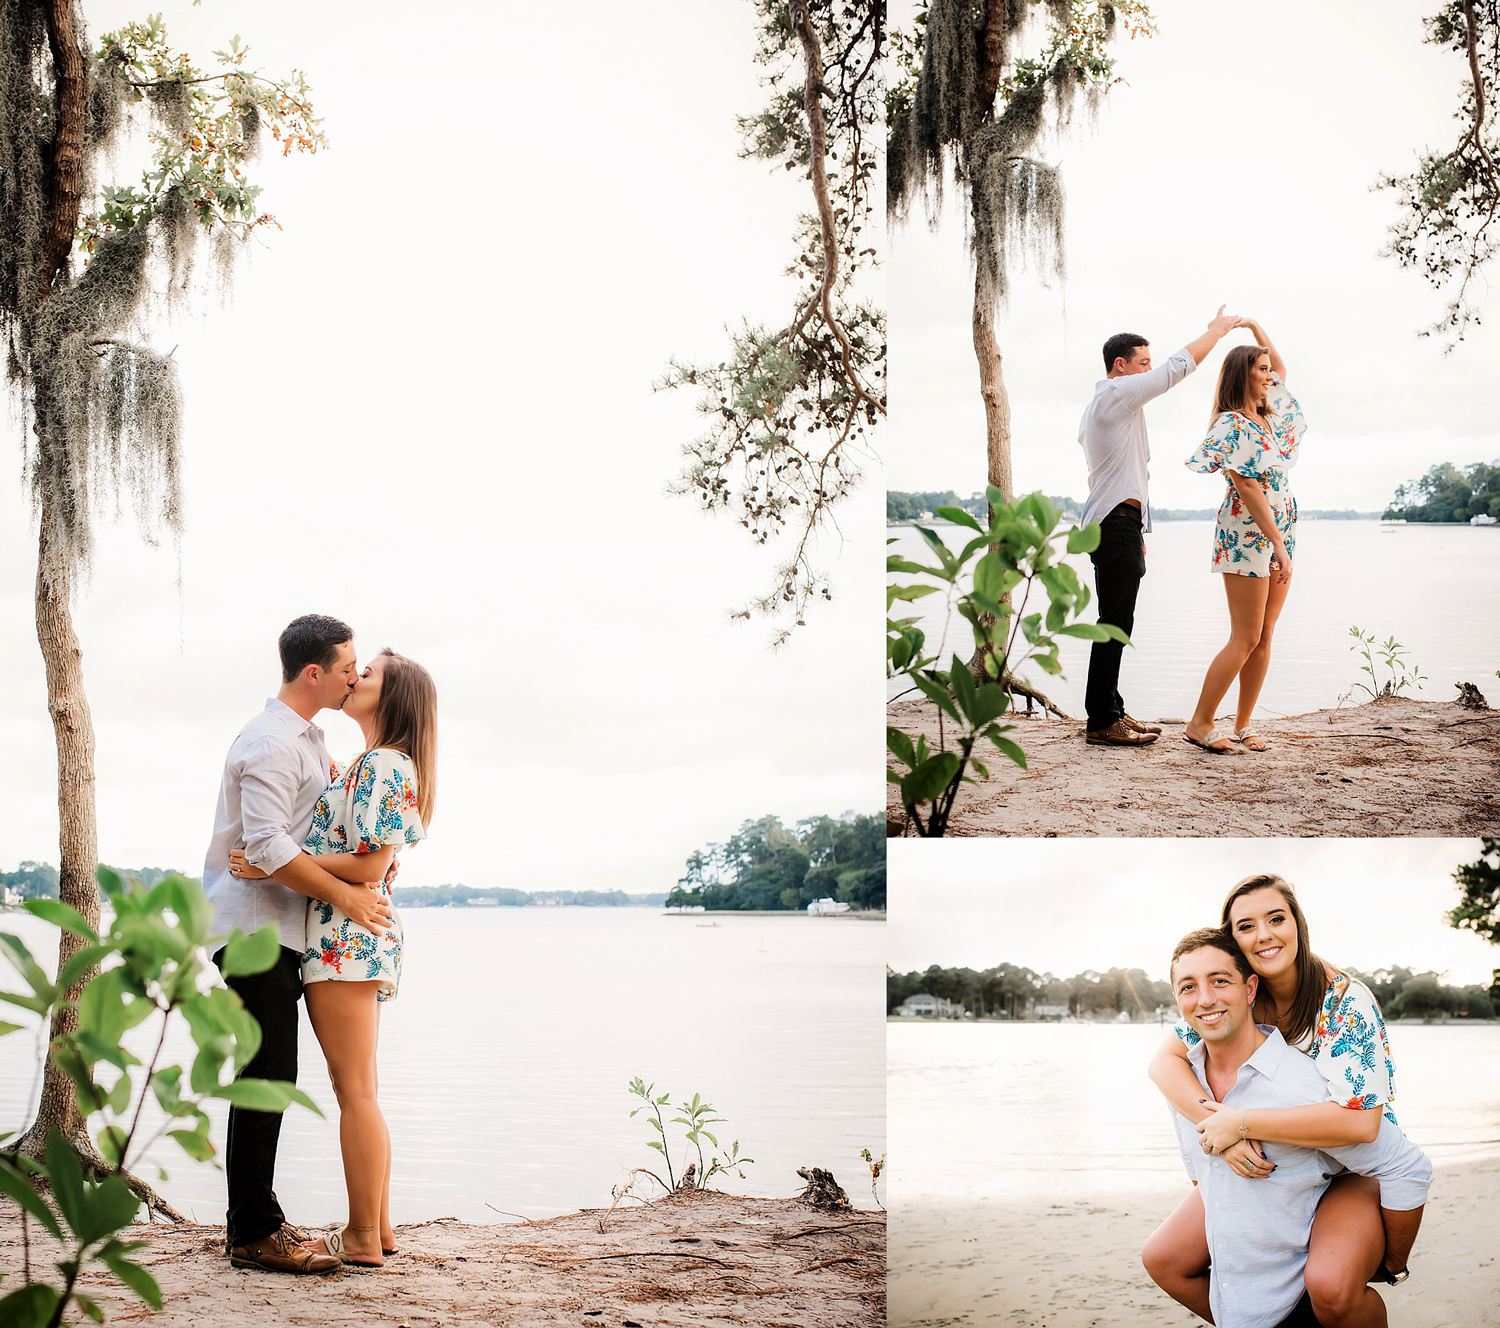 engagement-photos-virginia-beach-wedding-photographer-melissa-bliss-photography-first-landing-state-park-session.jpg